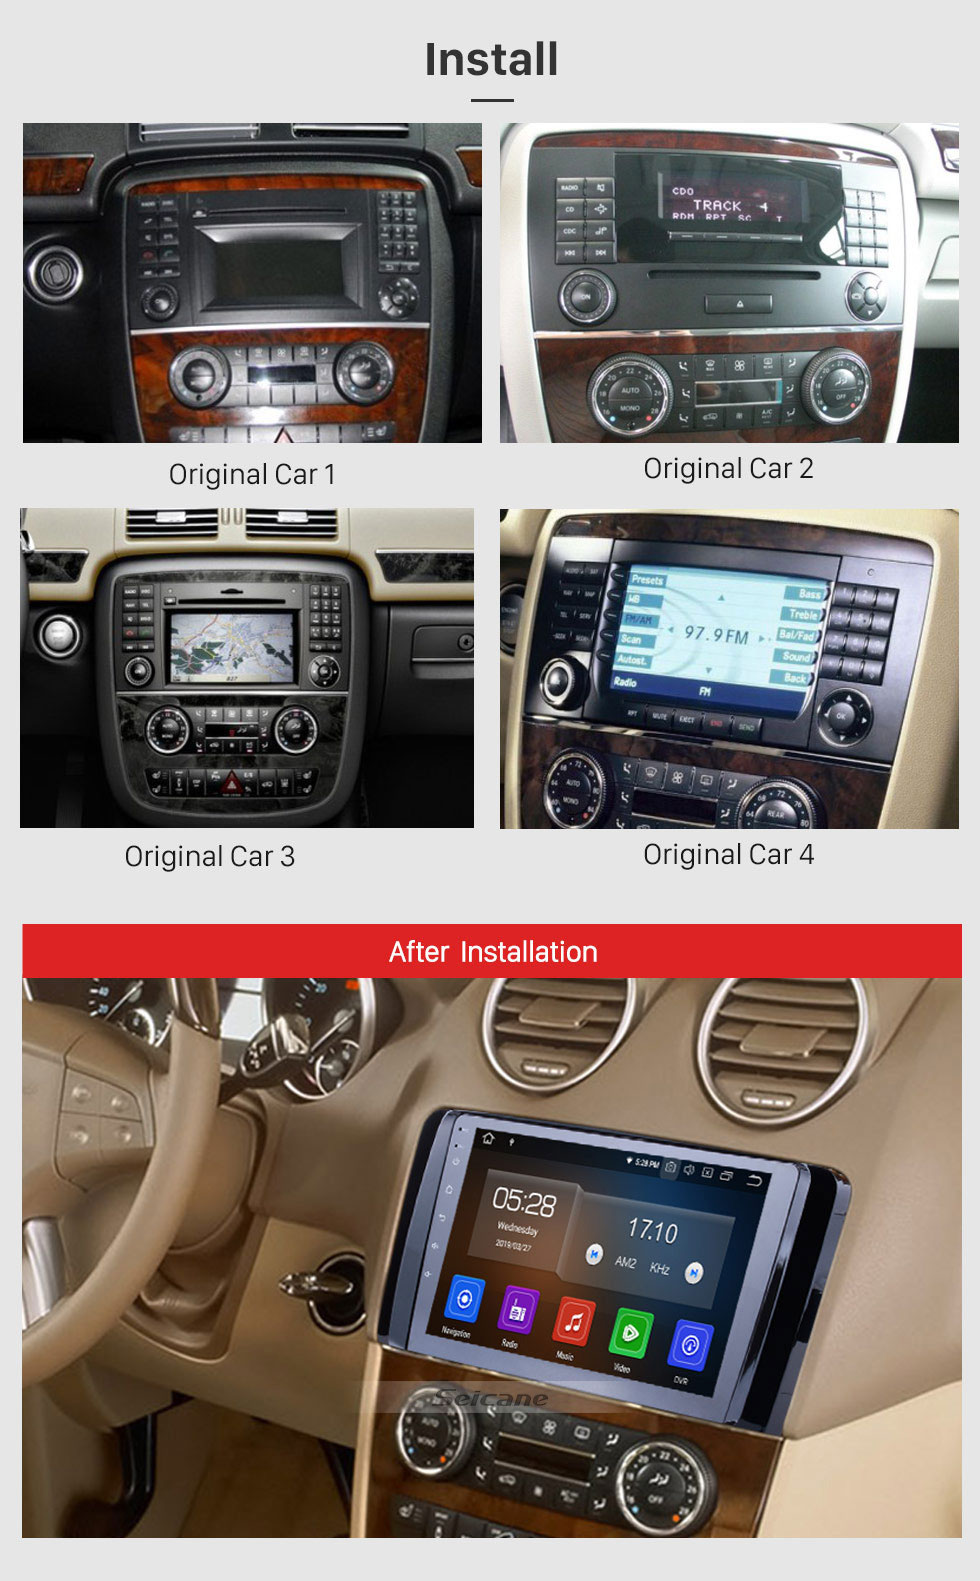 Seicane 9 inch 2006-2013 Mercedes Benz R Class W251 R280 R300 R320 R350 R63 Android 9.0 HD Touchscreen Radio GPS Navigation system with Bluetooth WIFI USB 1080P Video OBD2 DVR Mirror Link Steering wheel control